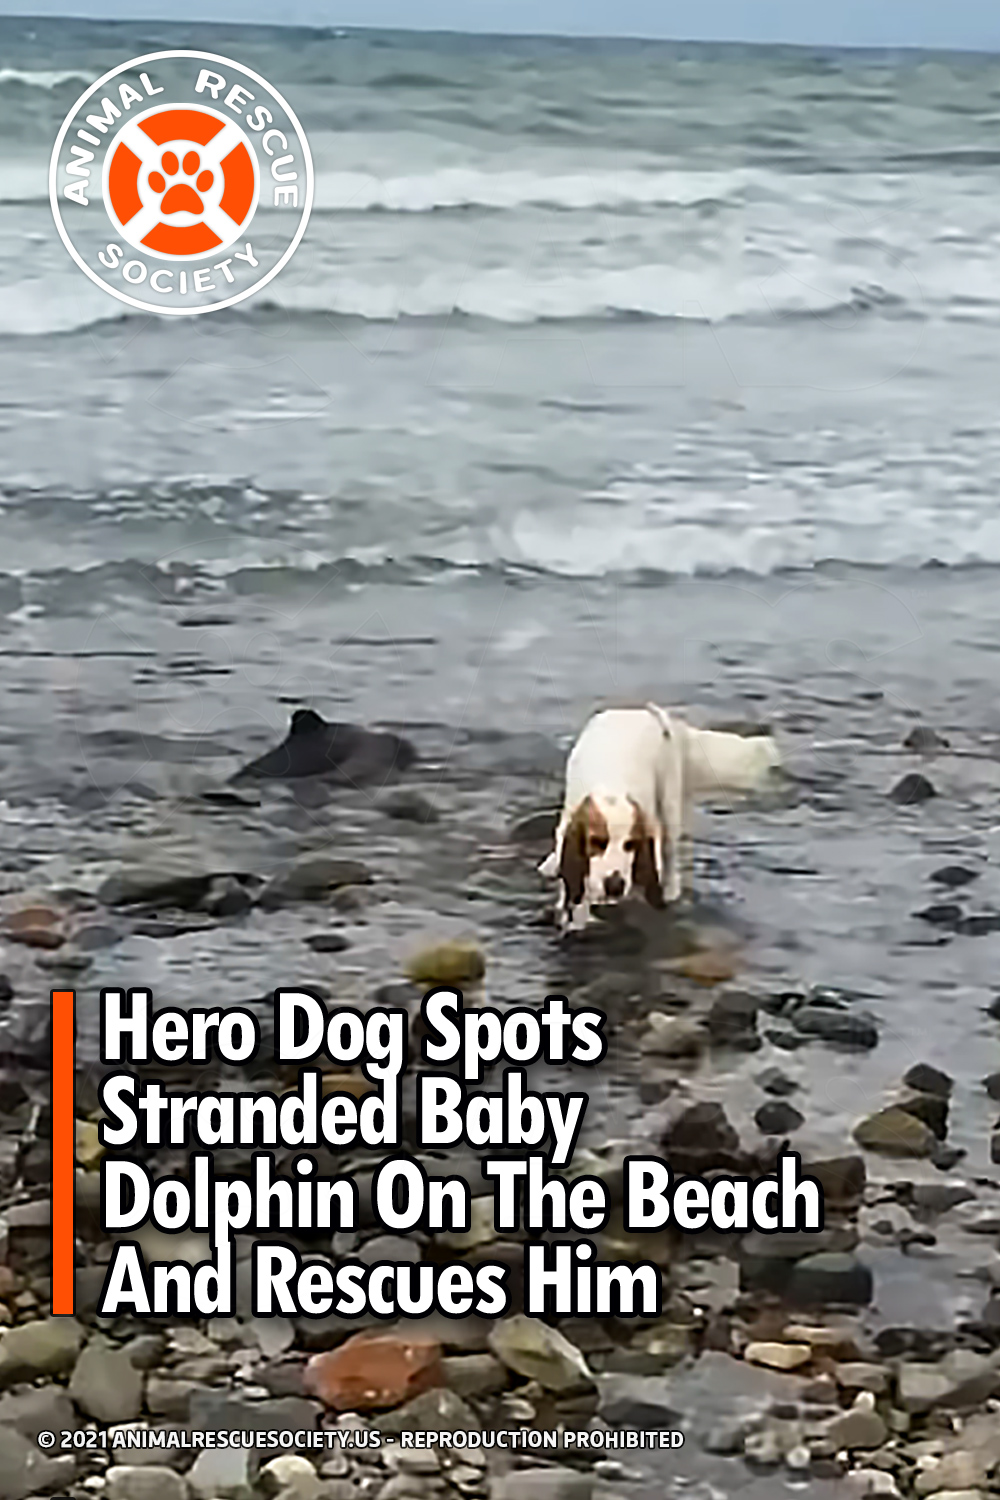 Hero Dog Spots Stranded Baby Dolphin On The Beach And Rescues Him